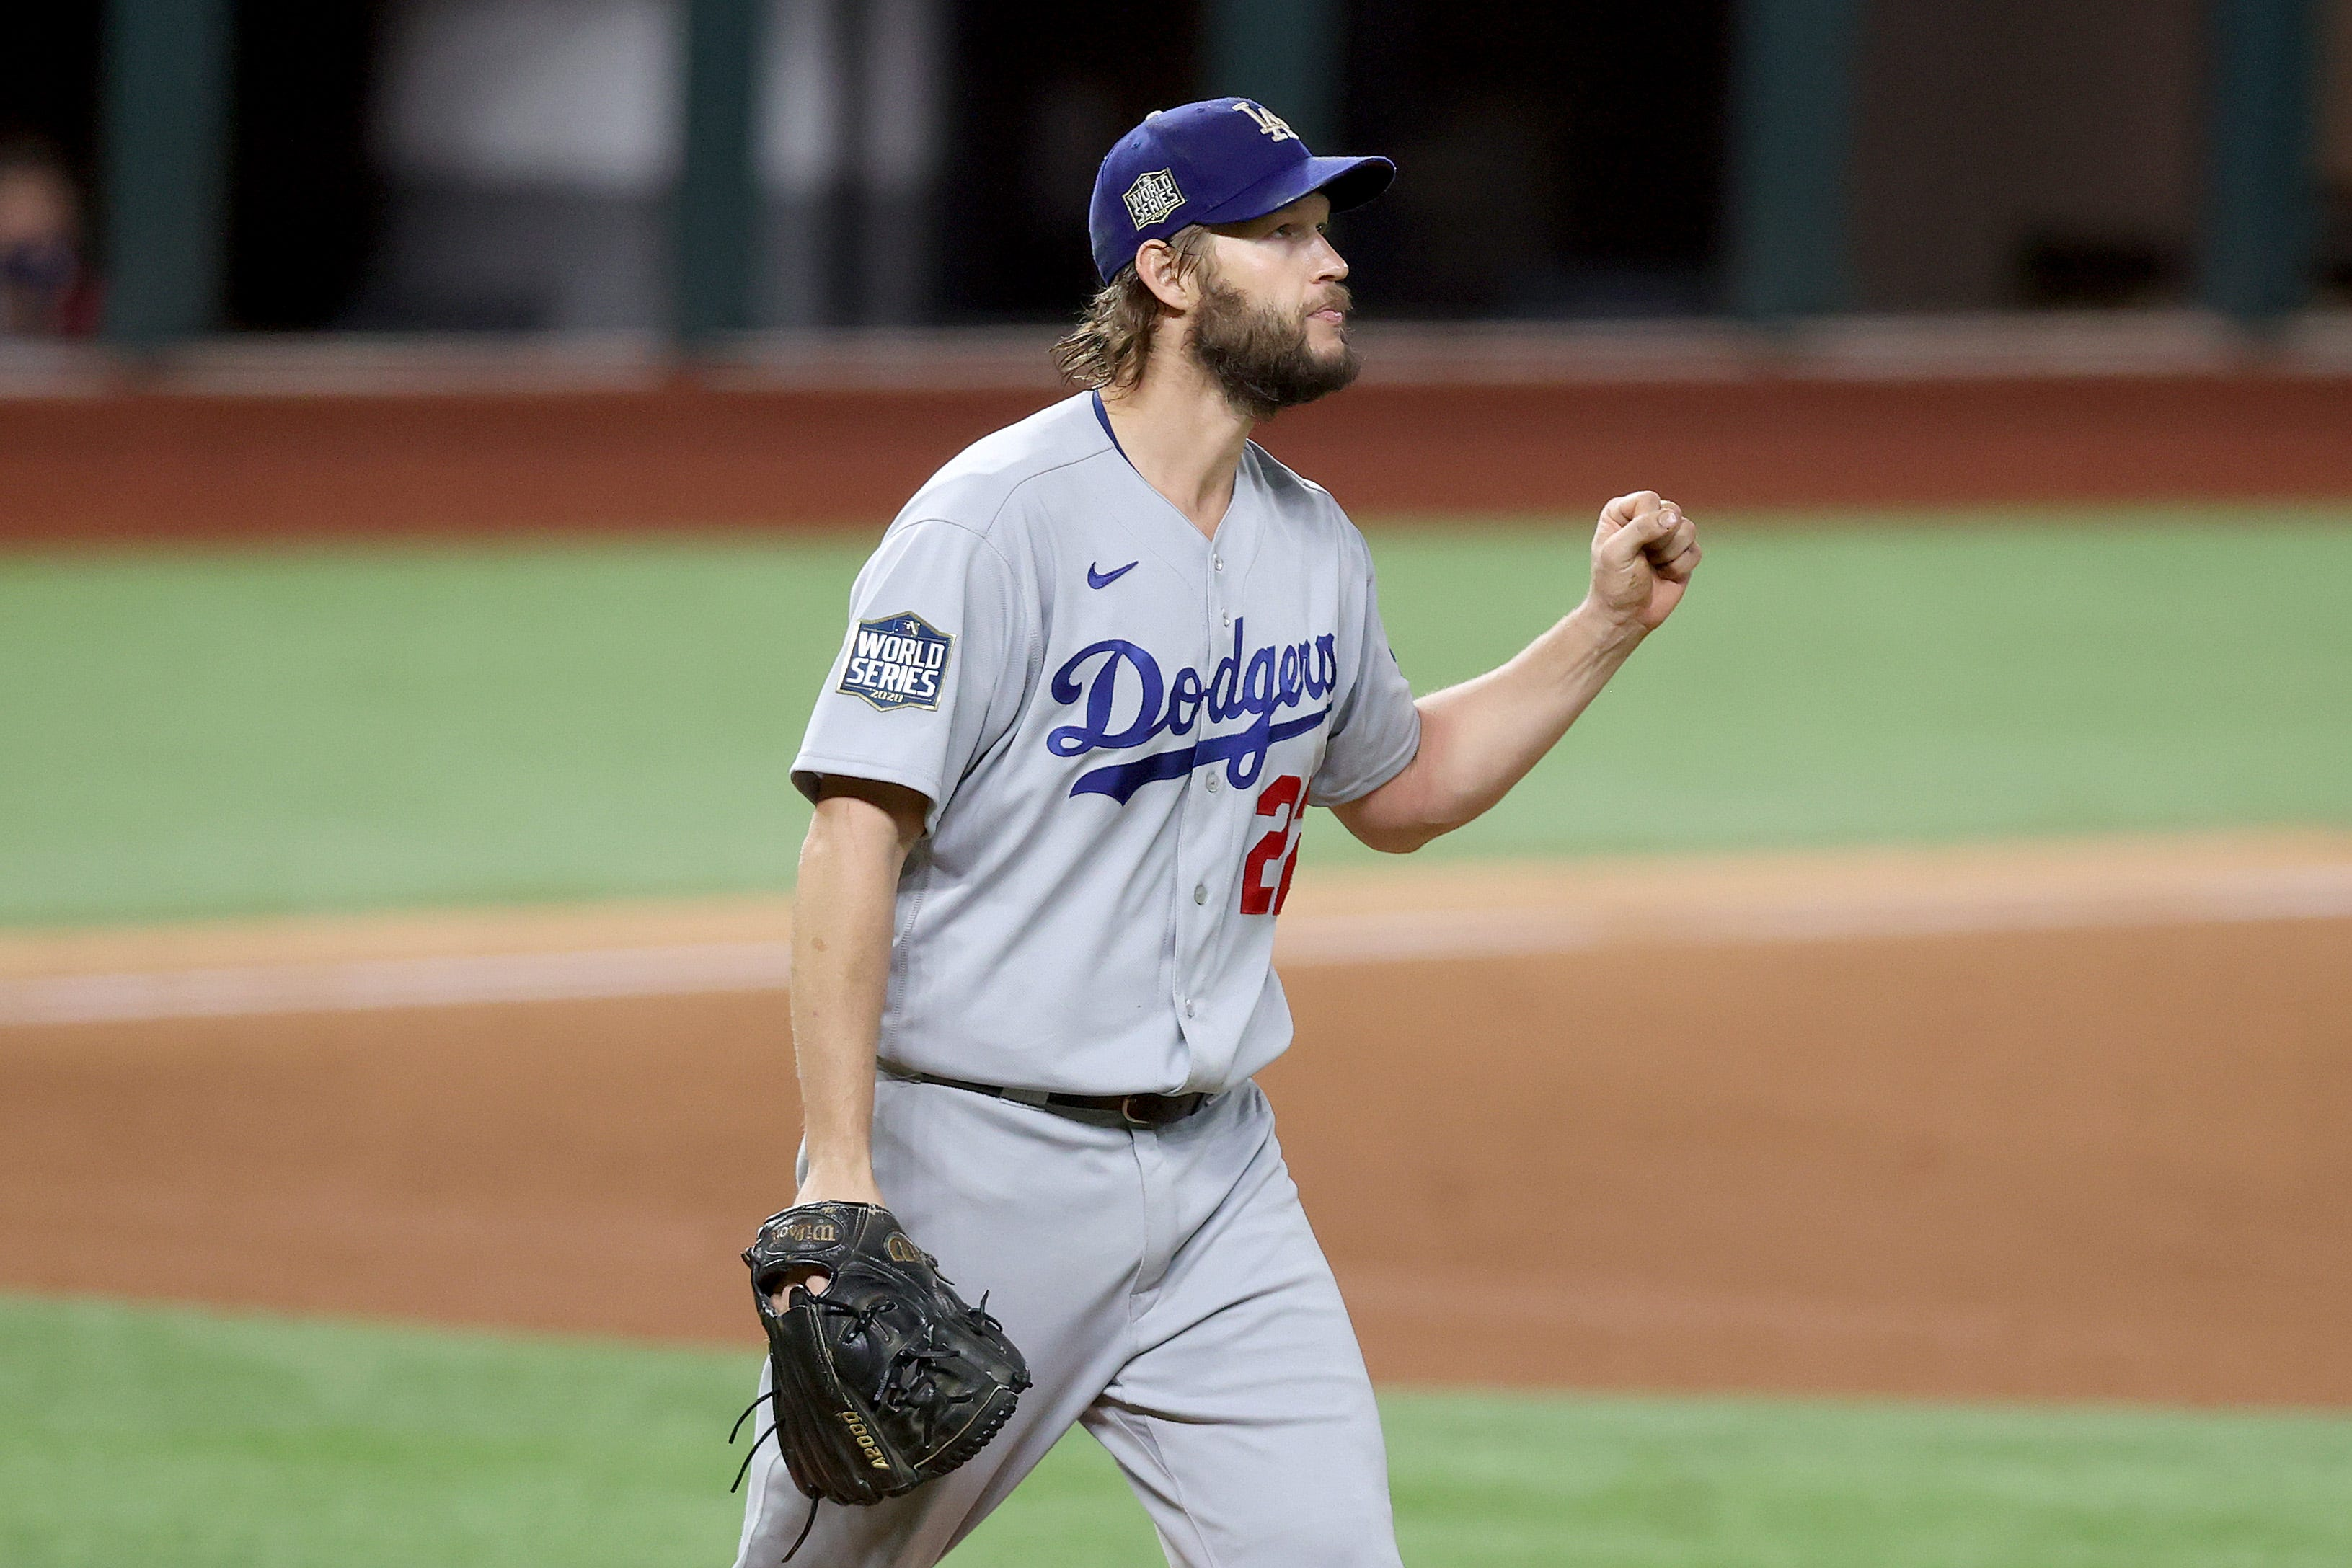 'He deserves it': Clayton Kershaw sets up Dodgers for first World Series title in 32 years